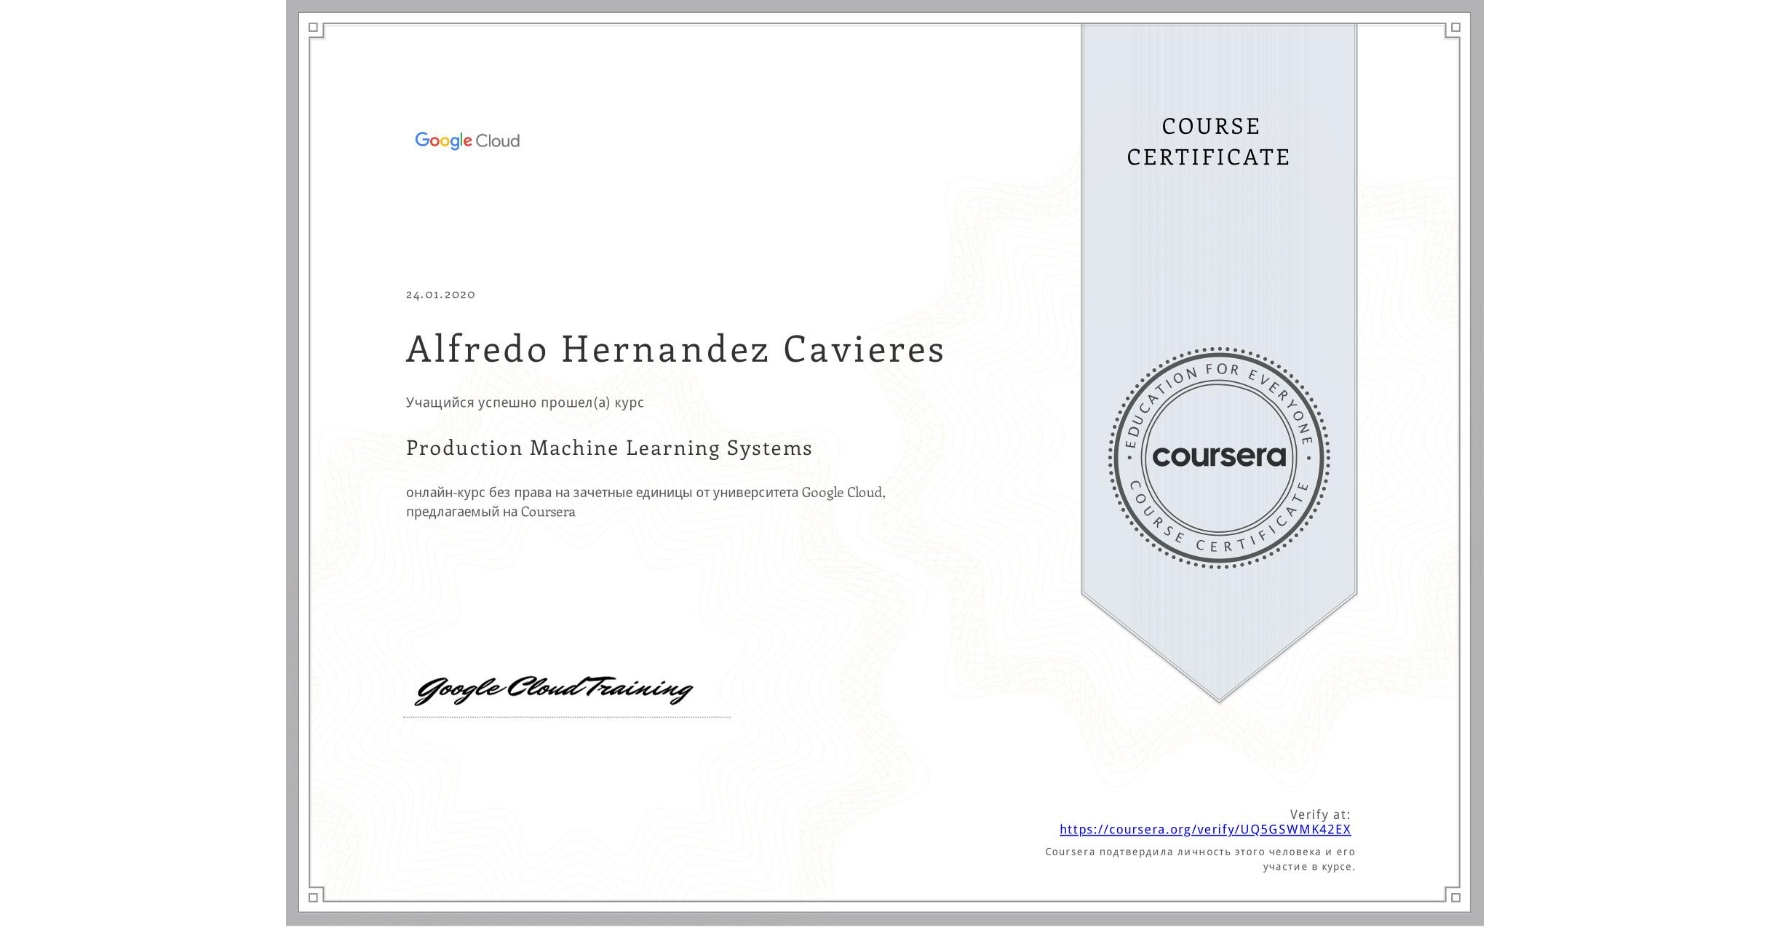 View certificate for Alfredo Hernandez Cavieres, Production Machine Learning Systems, an online non-credit course authorized by Google Cloud and offered through Coursera